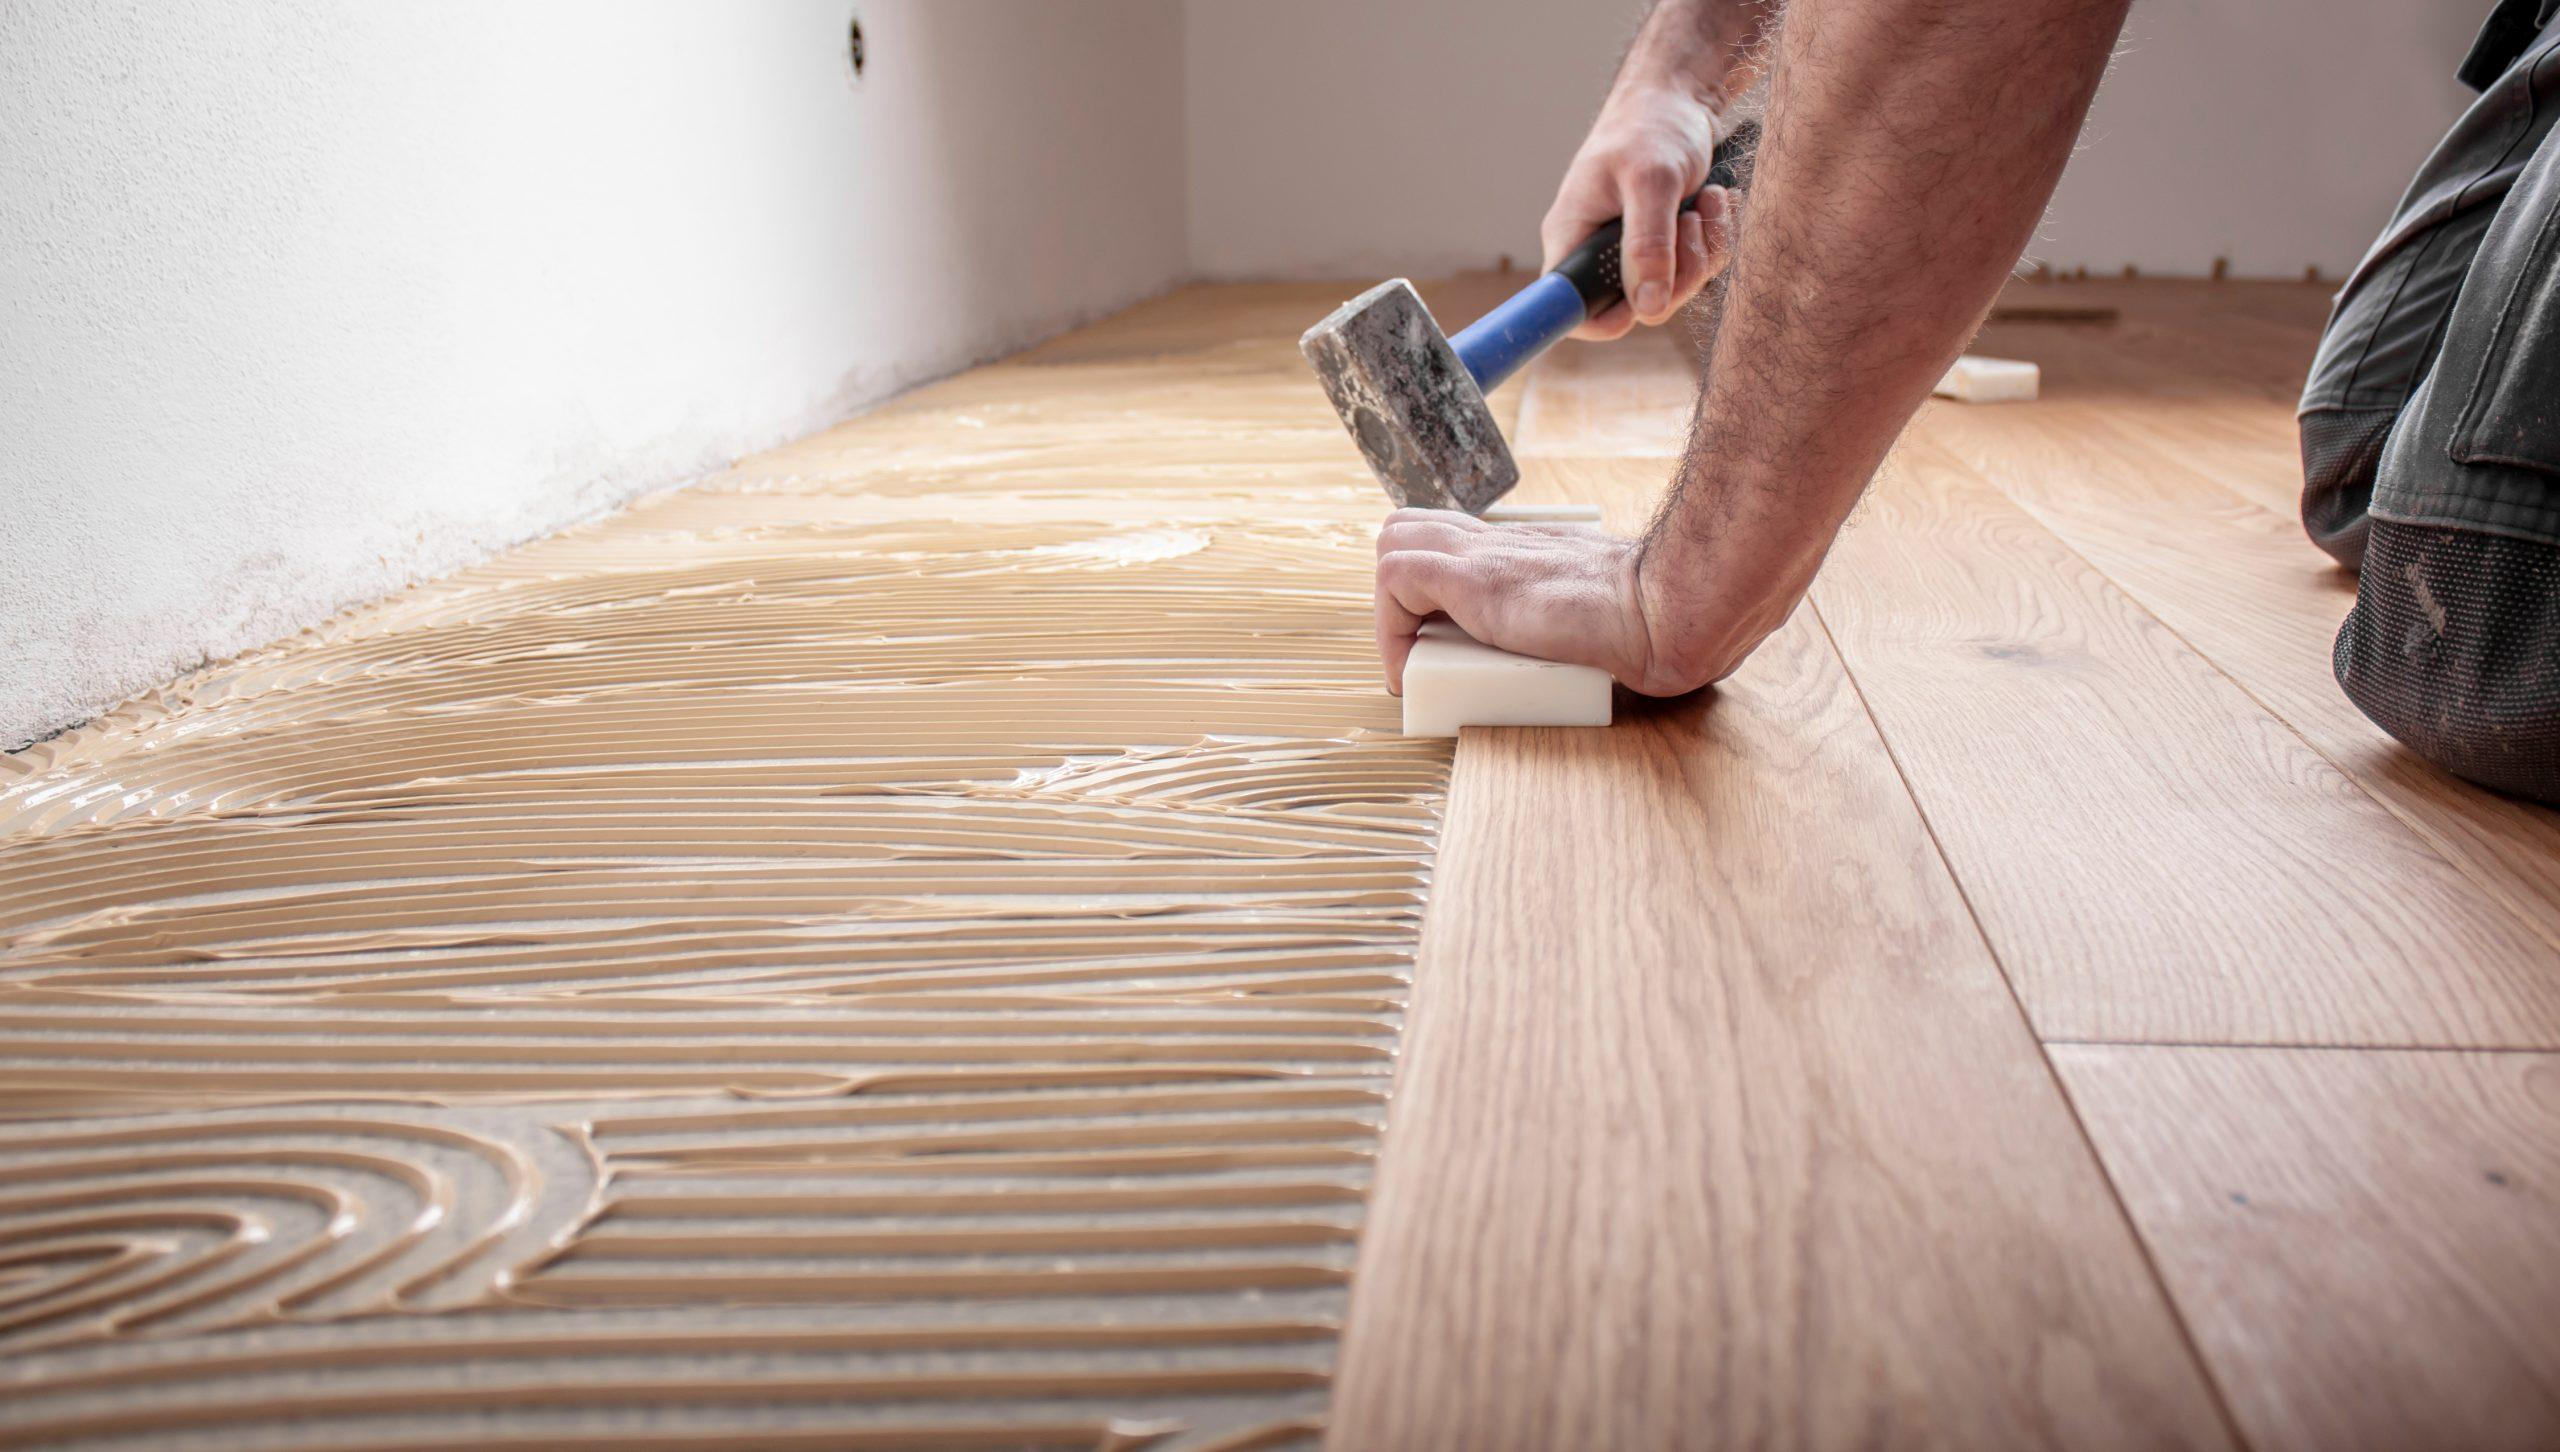 A worker laying wood flooring, ensuring the edges adhere together.